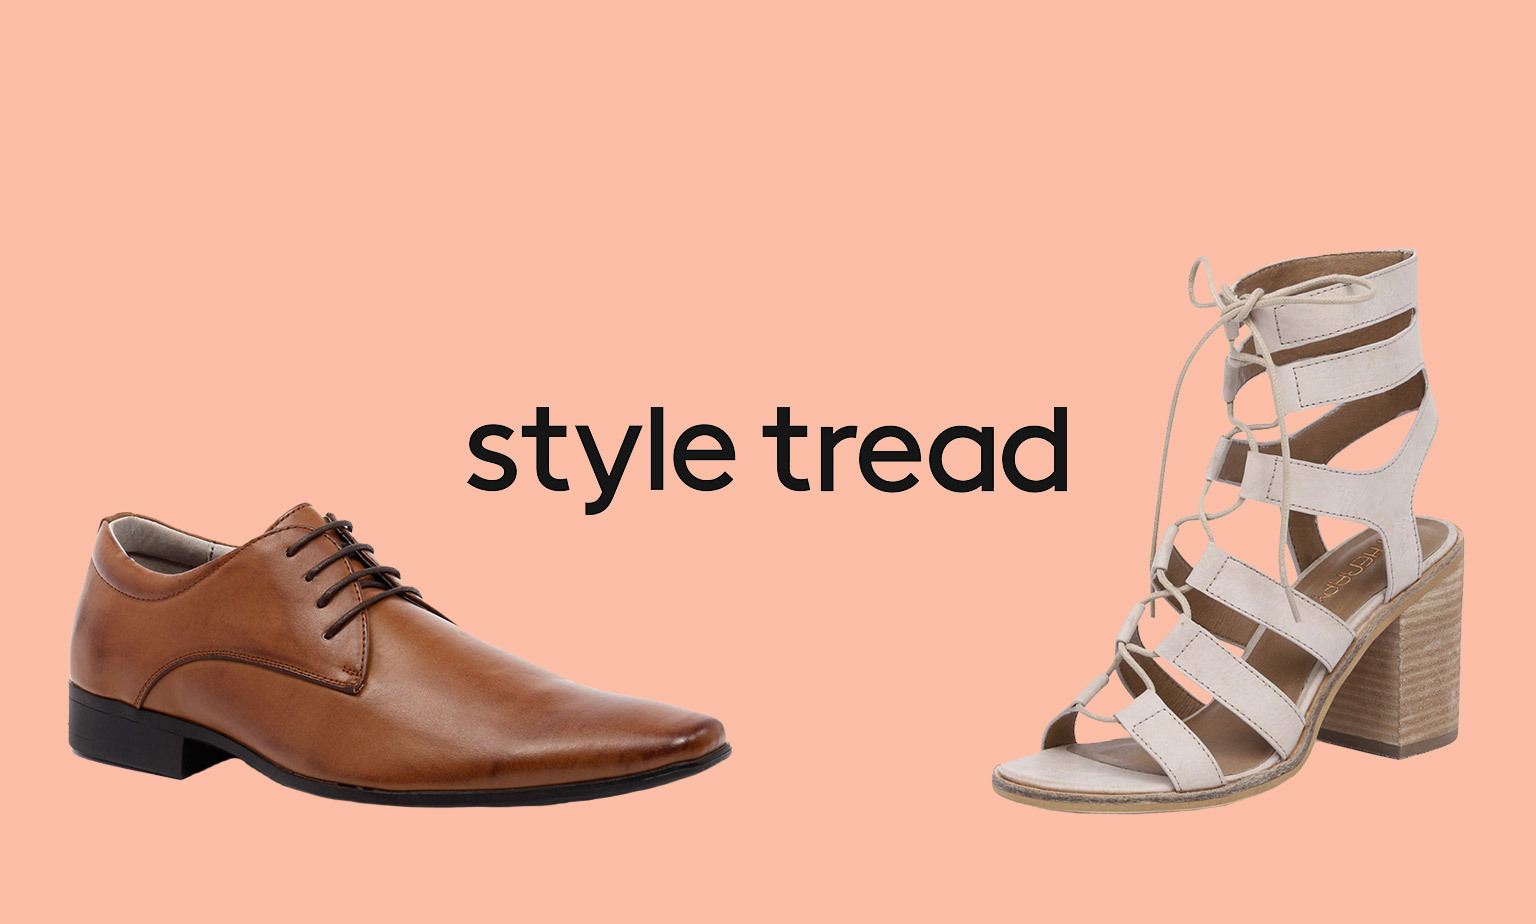 Save Up to 30% on Styletread